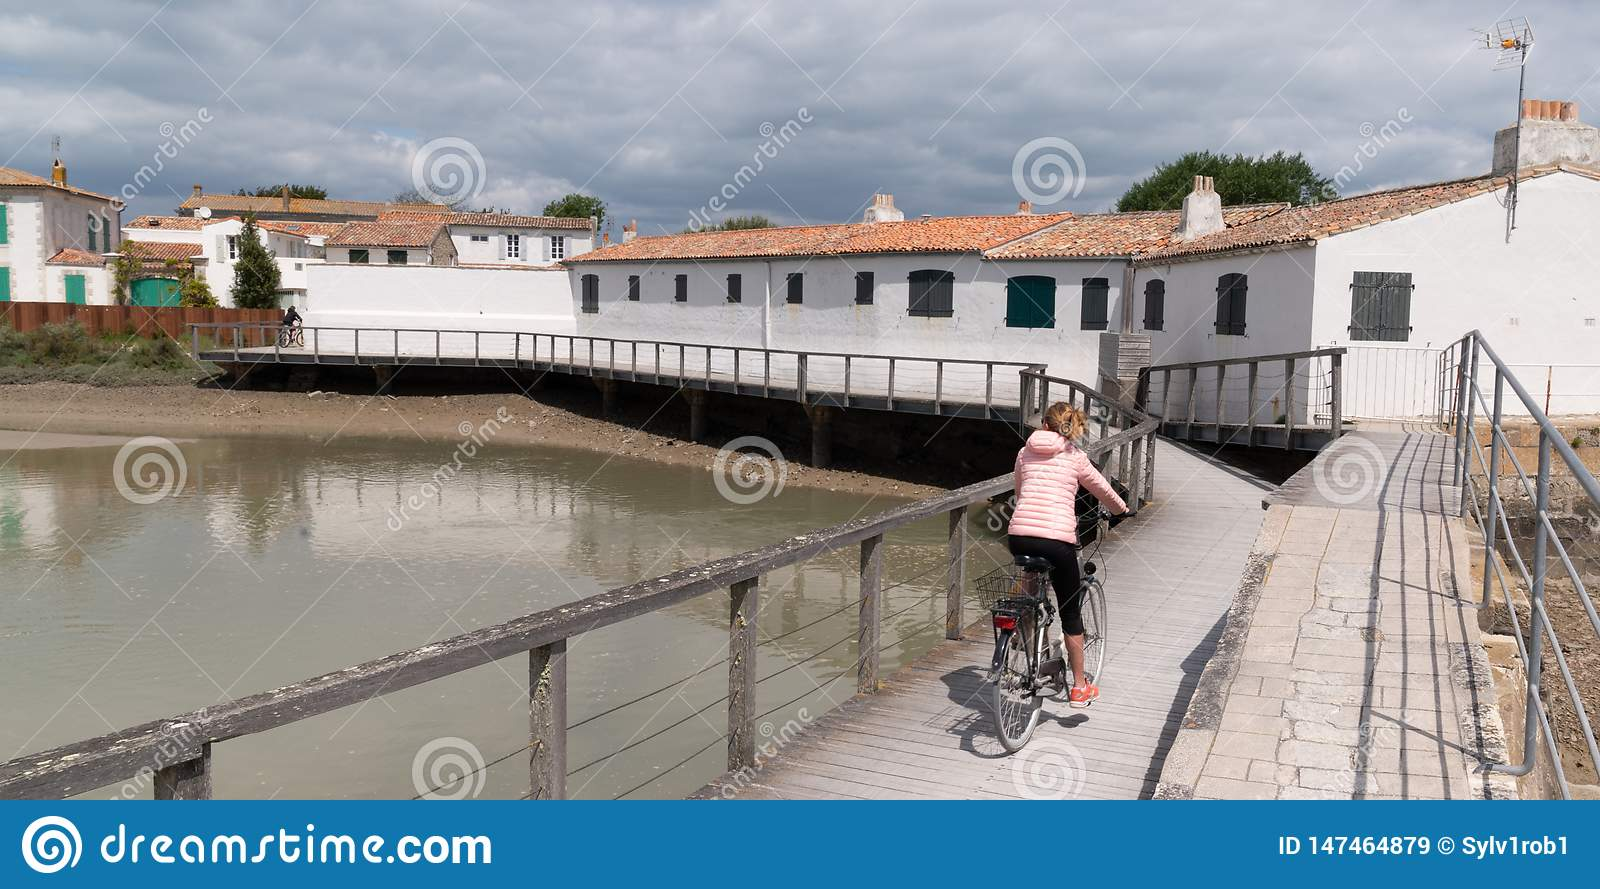 Young woman riding with bicycle on a wooden path to beach in Summer sunny day on island ile de Re in France